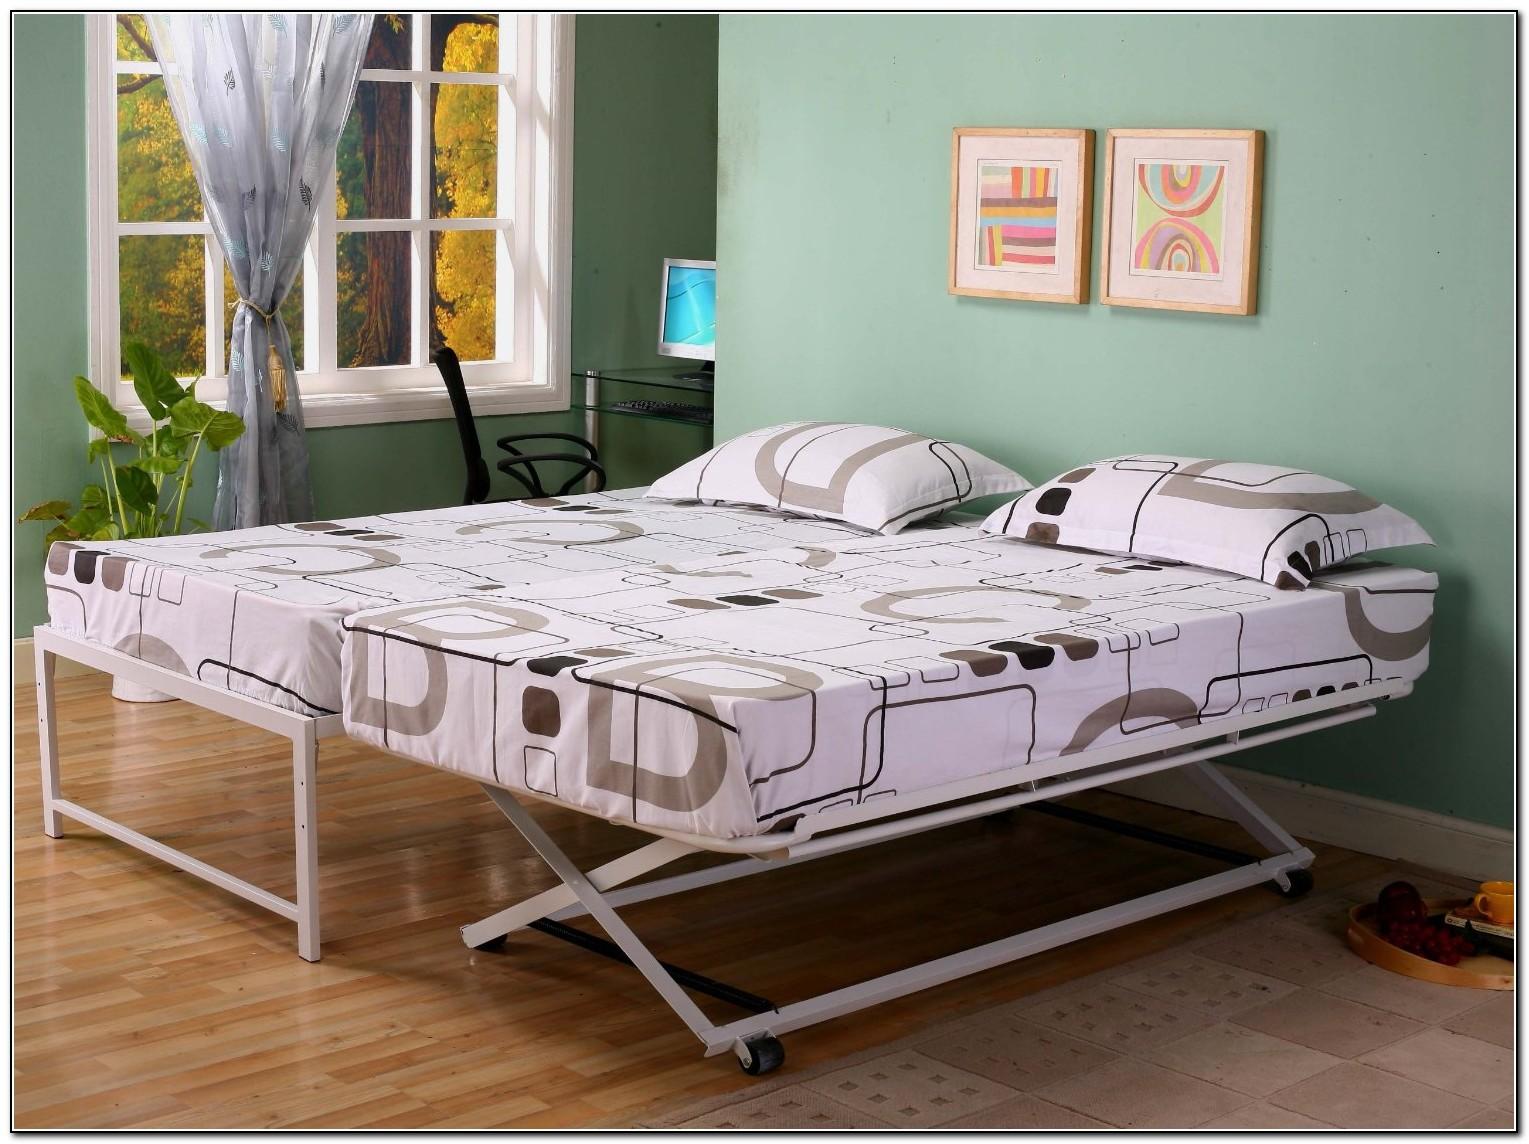 pop up trundle bed ikea beds home design ideas. Black Bedroom Furniture Sets. Home Design Ideas